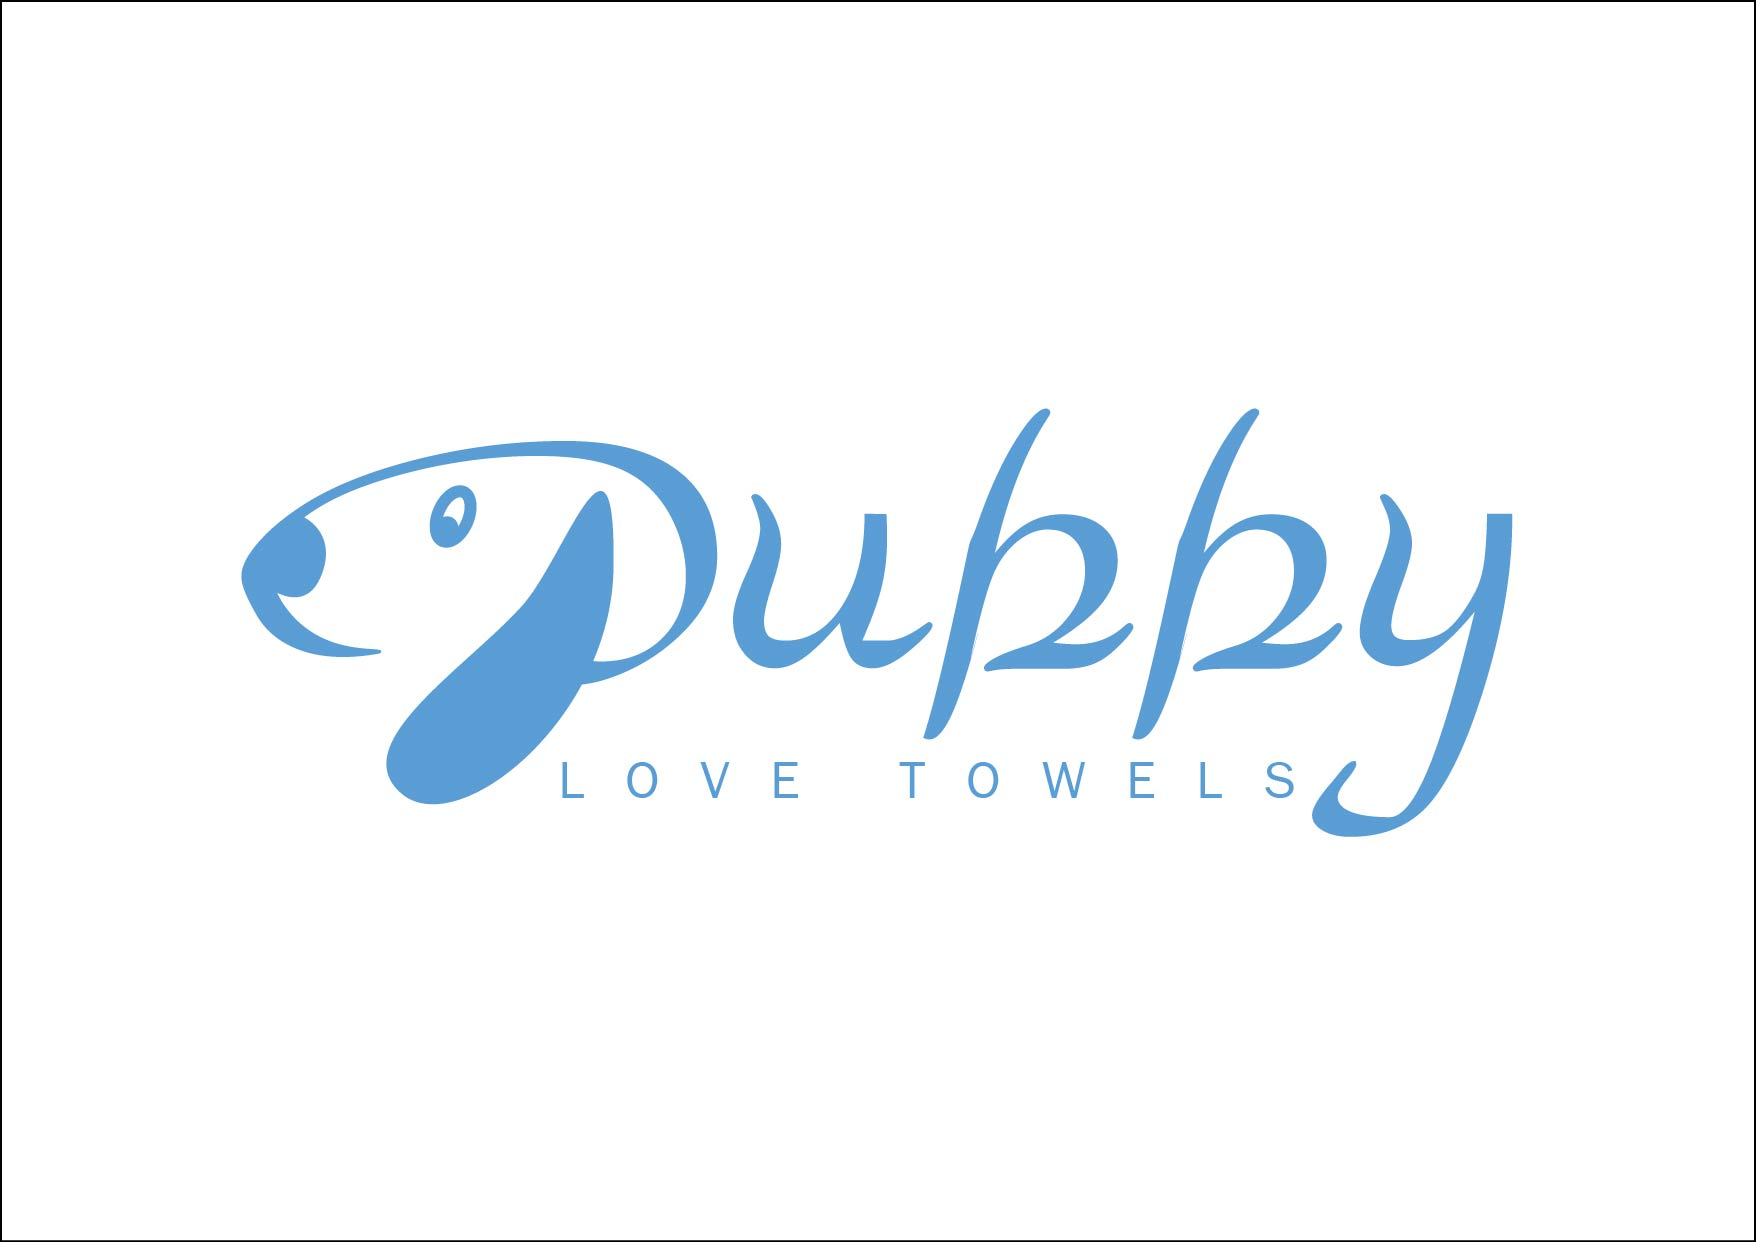 Logo Design by Yash Sindhav - Entry No. 34 in the Logo Design Contest Artistic Logo Design for Puppy Love Towels.